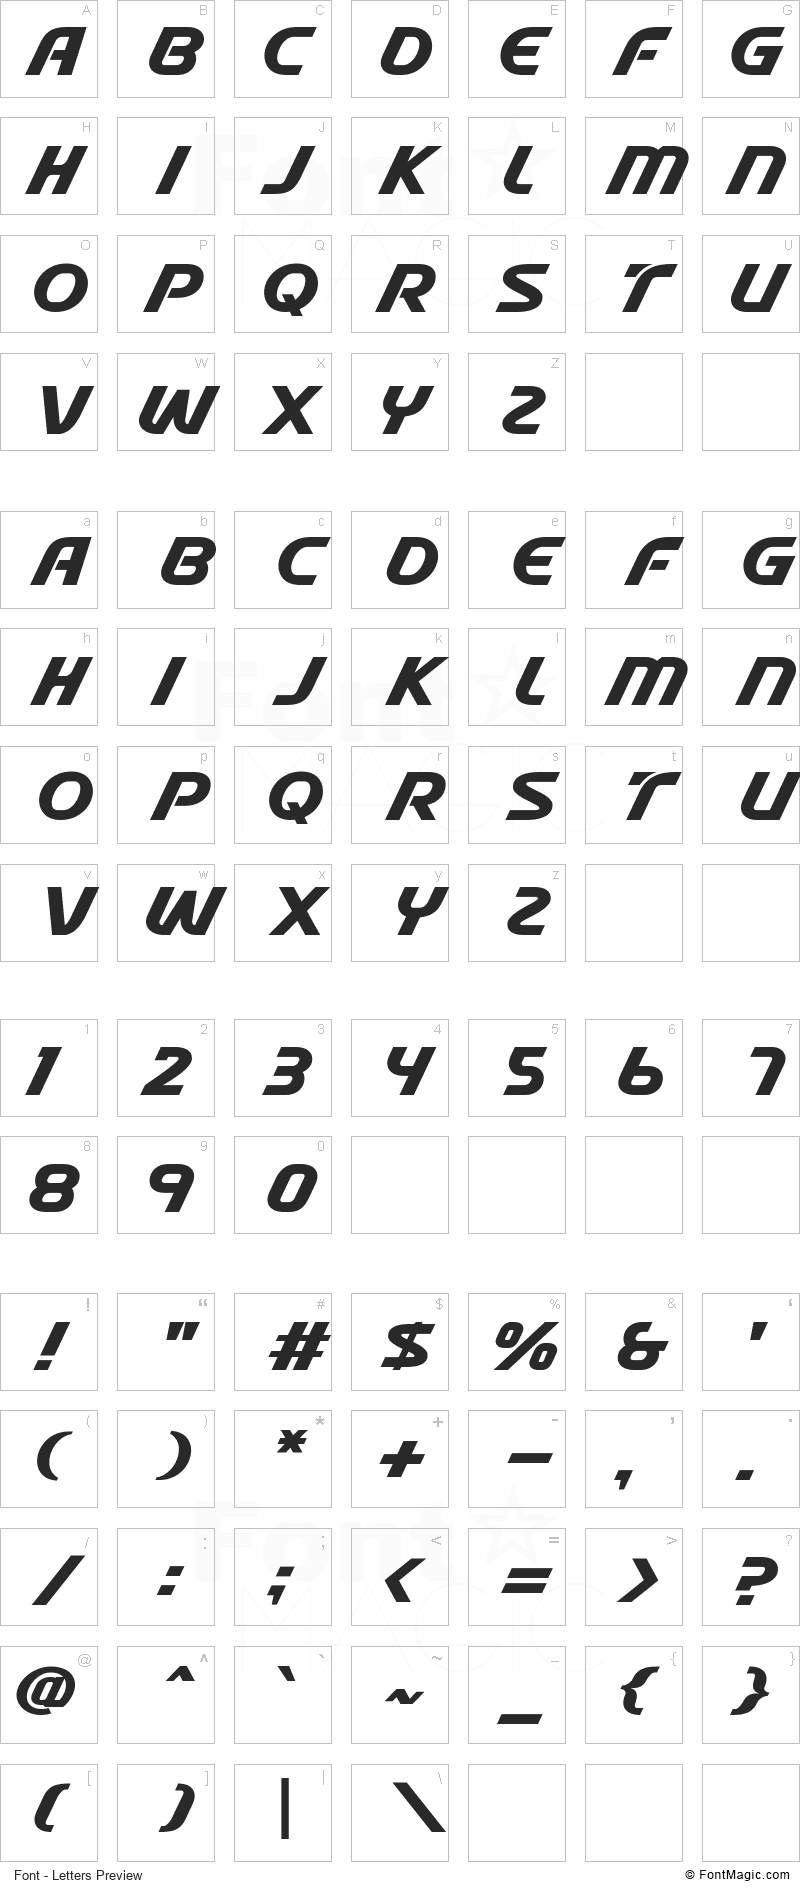 Stable Font - All Latters Preview Chart